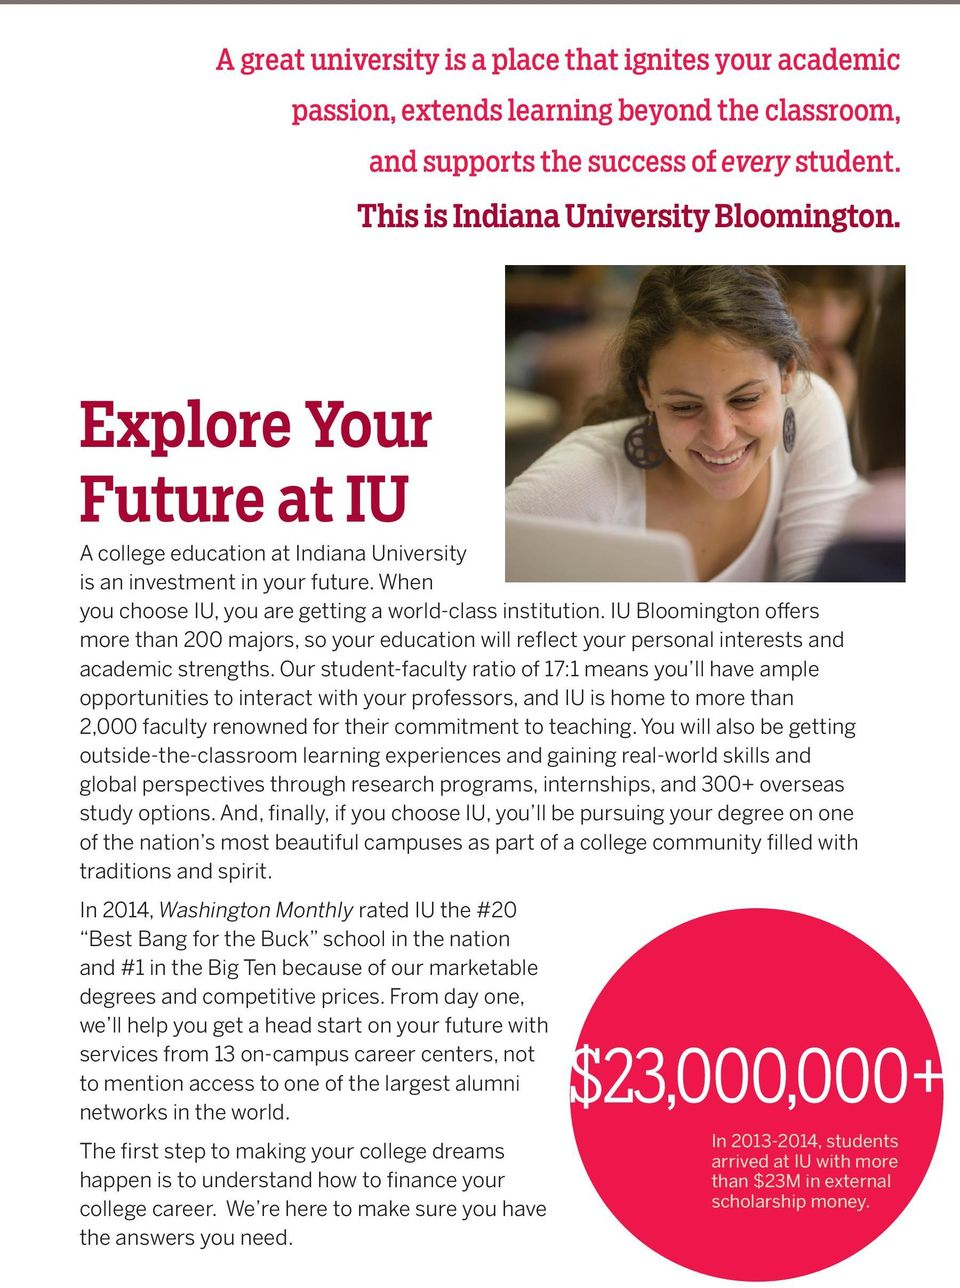 IU Bloomington offers more than 200 majors, so your education will reflect your personal interests and academic strengths.